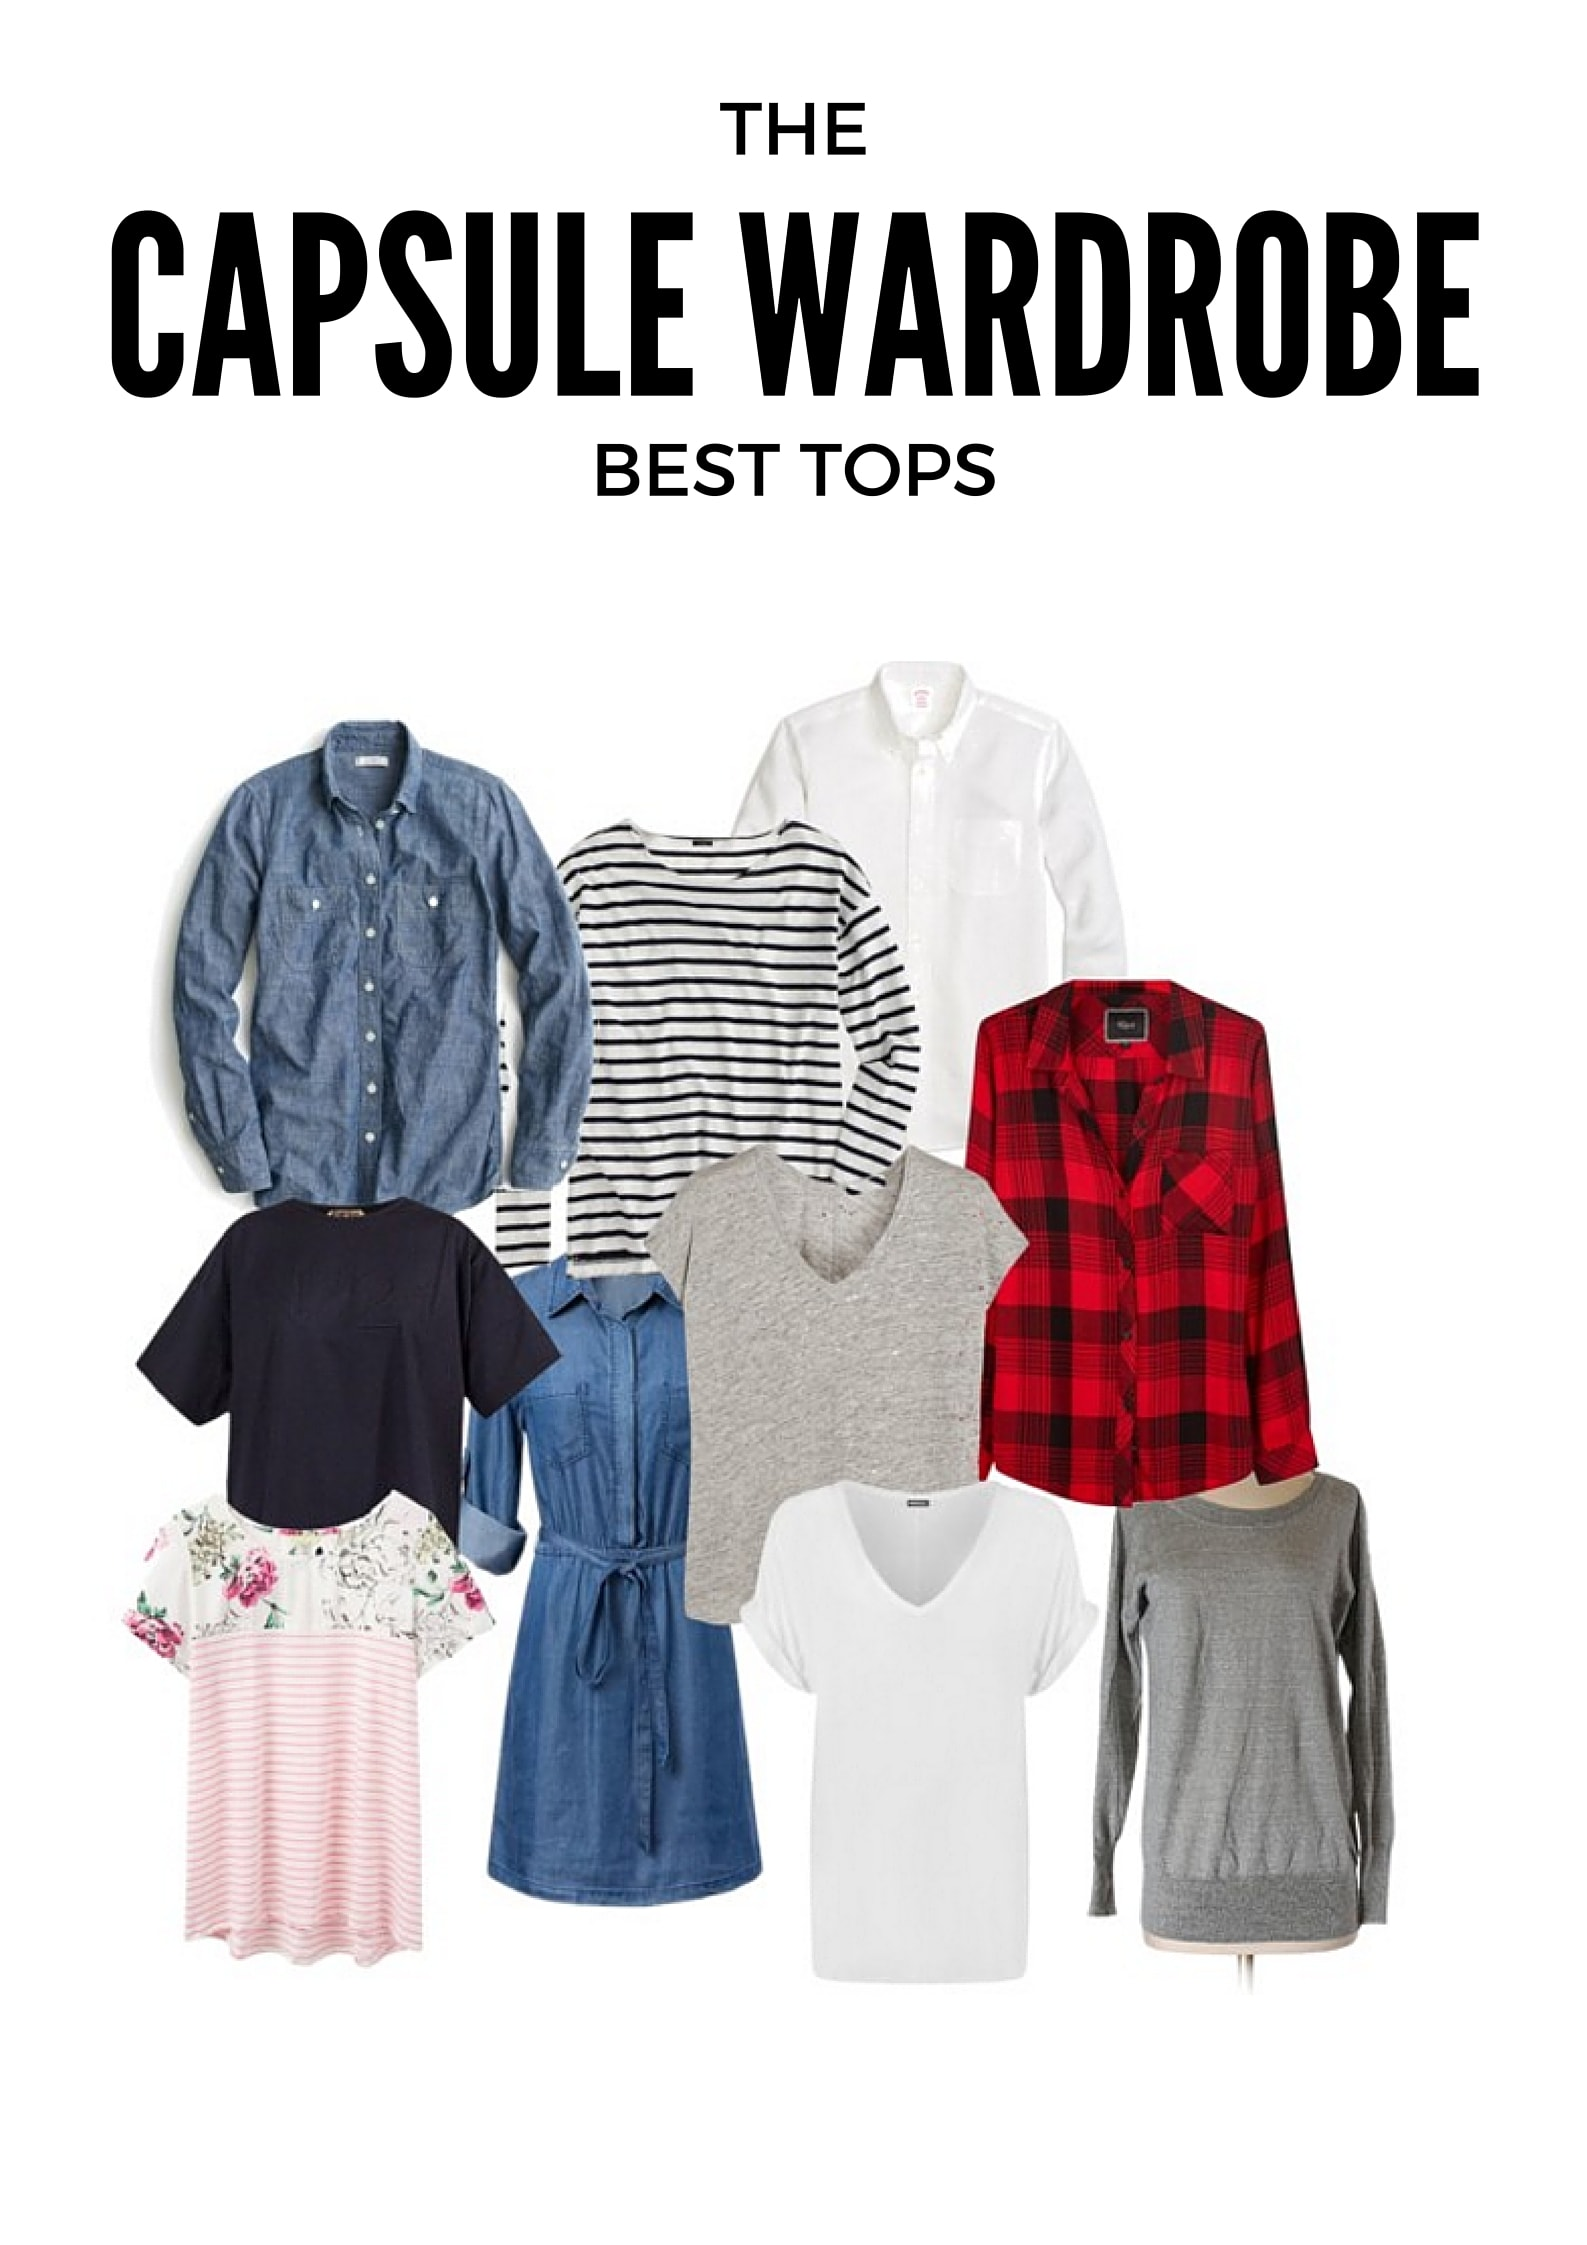 Best Capsule Wardrobe Basics Tops Under $50 from MomAdvice.com